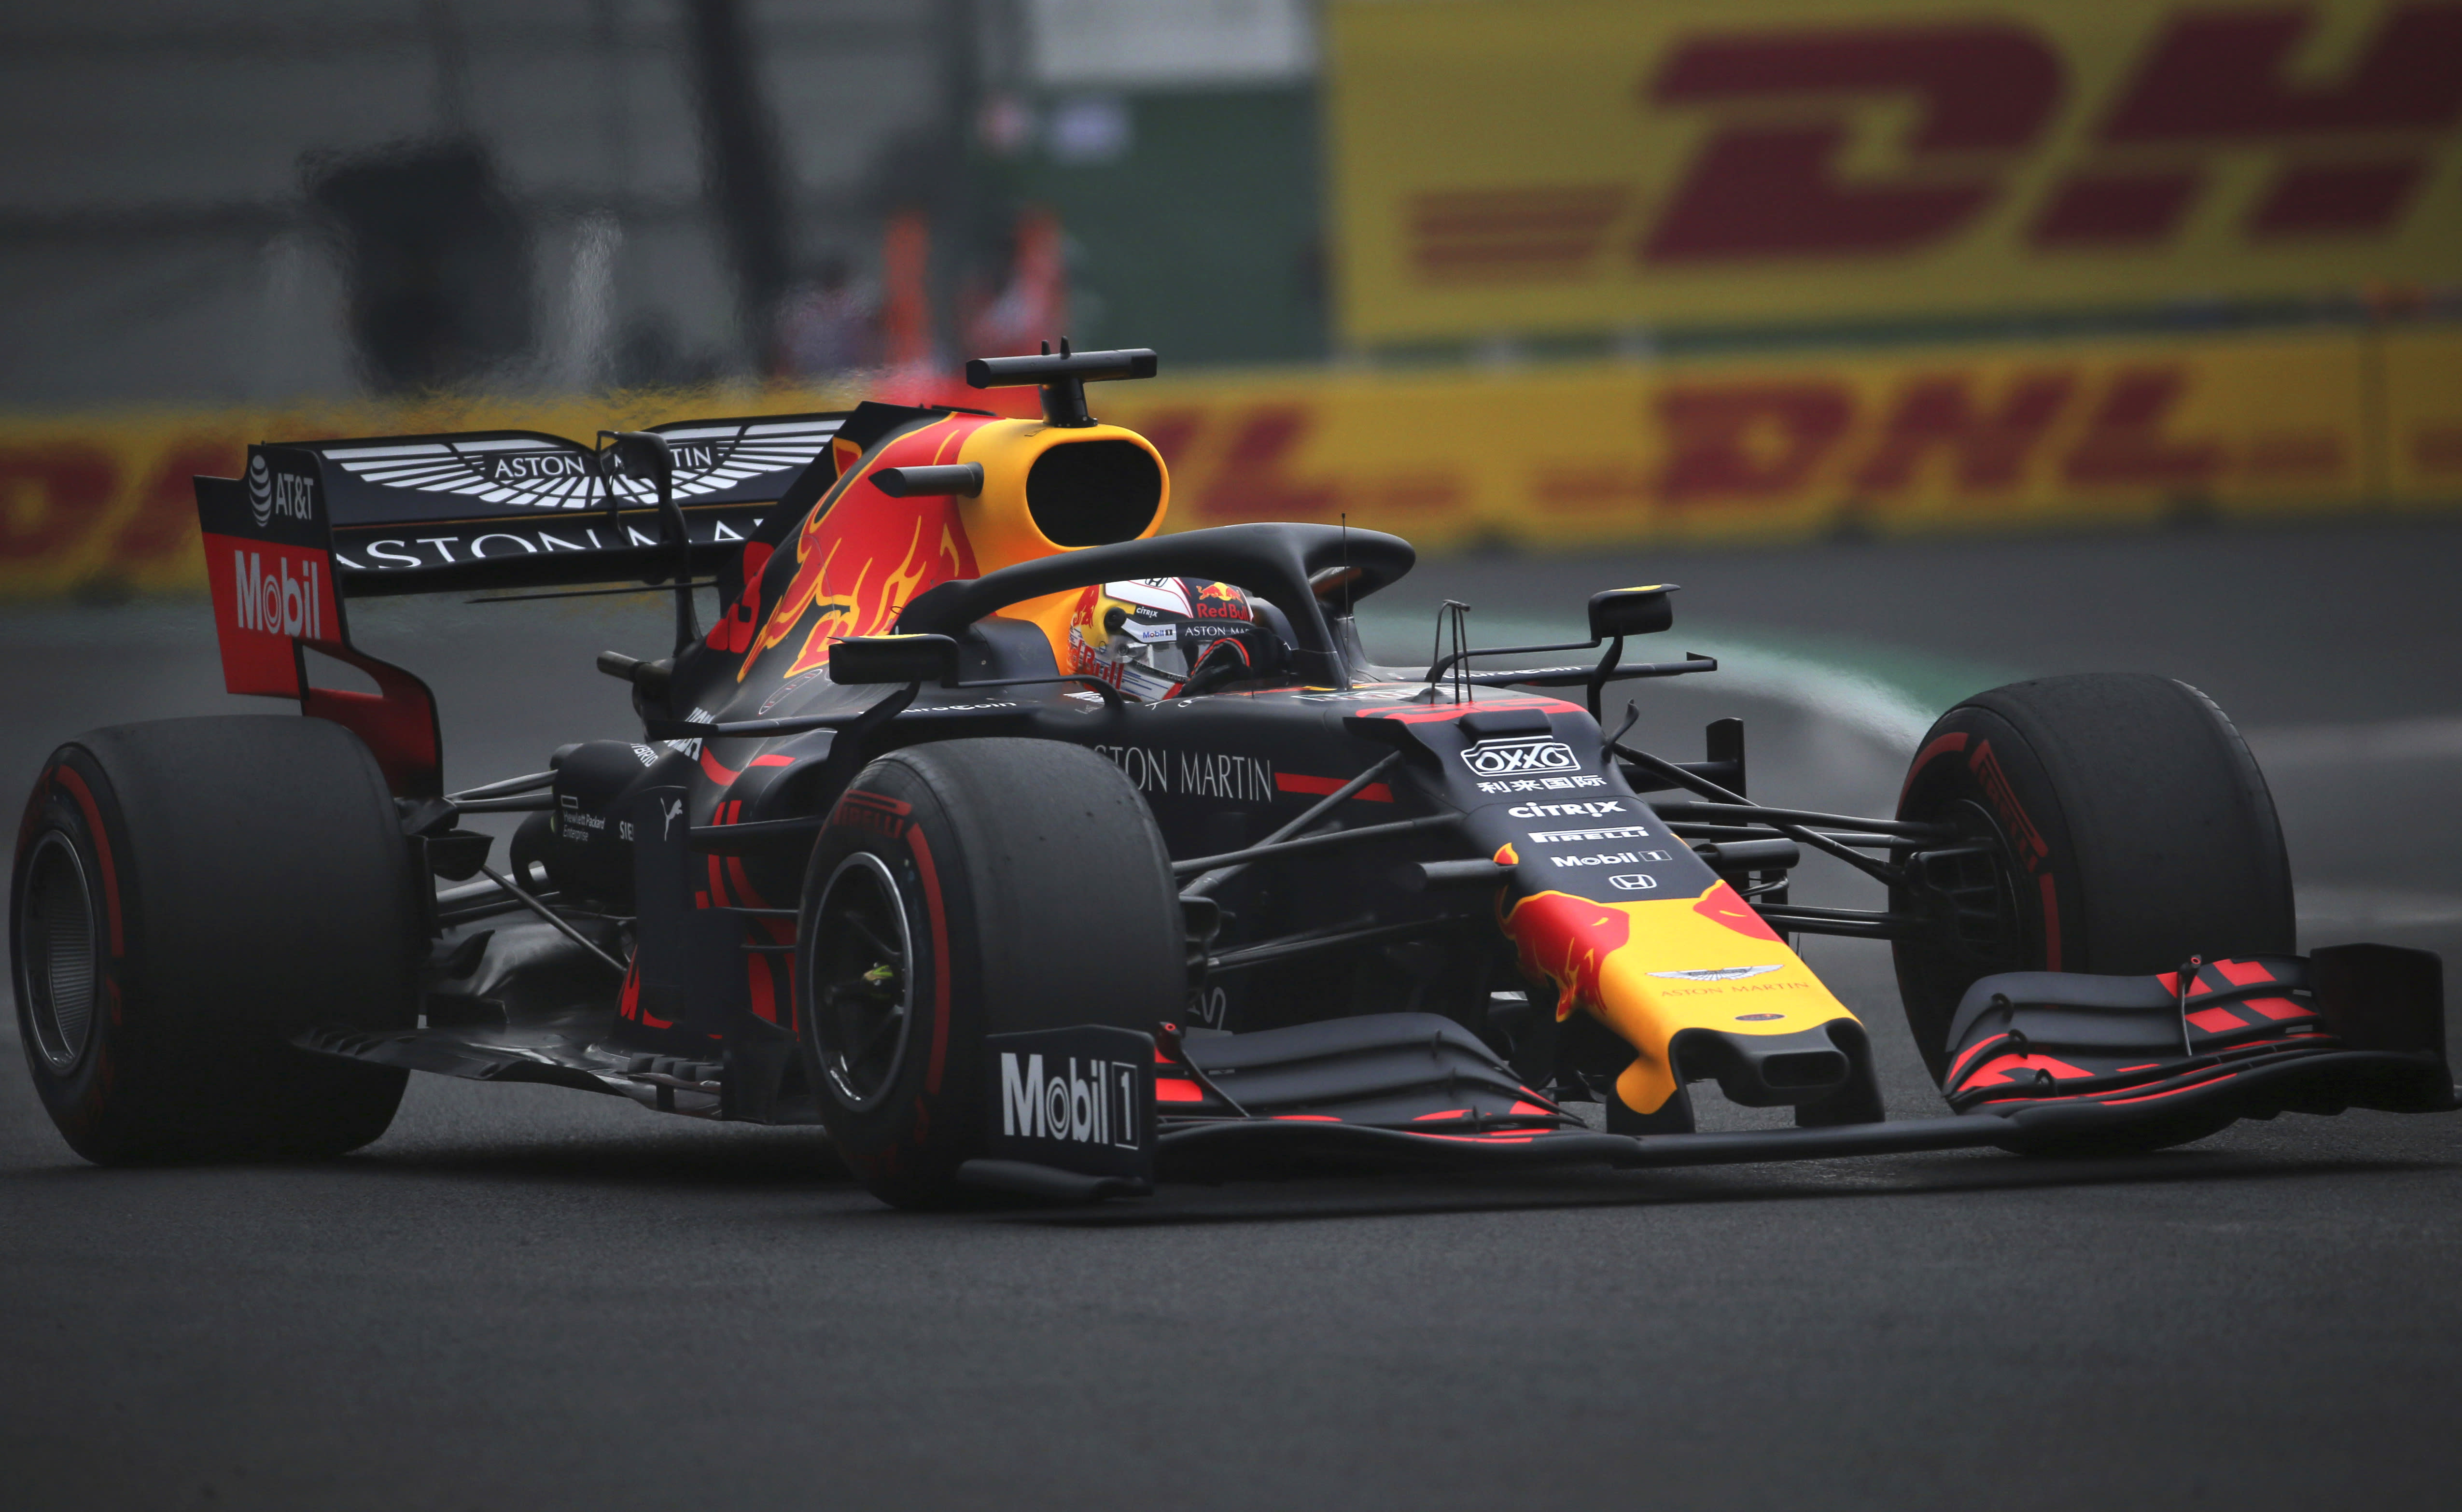 Red Bull driver Max Verstappen, of the Netherlands, drives his car during a training session of the Formula One Mexico Grand Prix auto race at the Hermanos Rodriguez racetrack in Mexico City, Friday, Oct. 25, 2019. (AP Photo/Marco Ugarte)